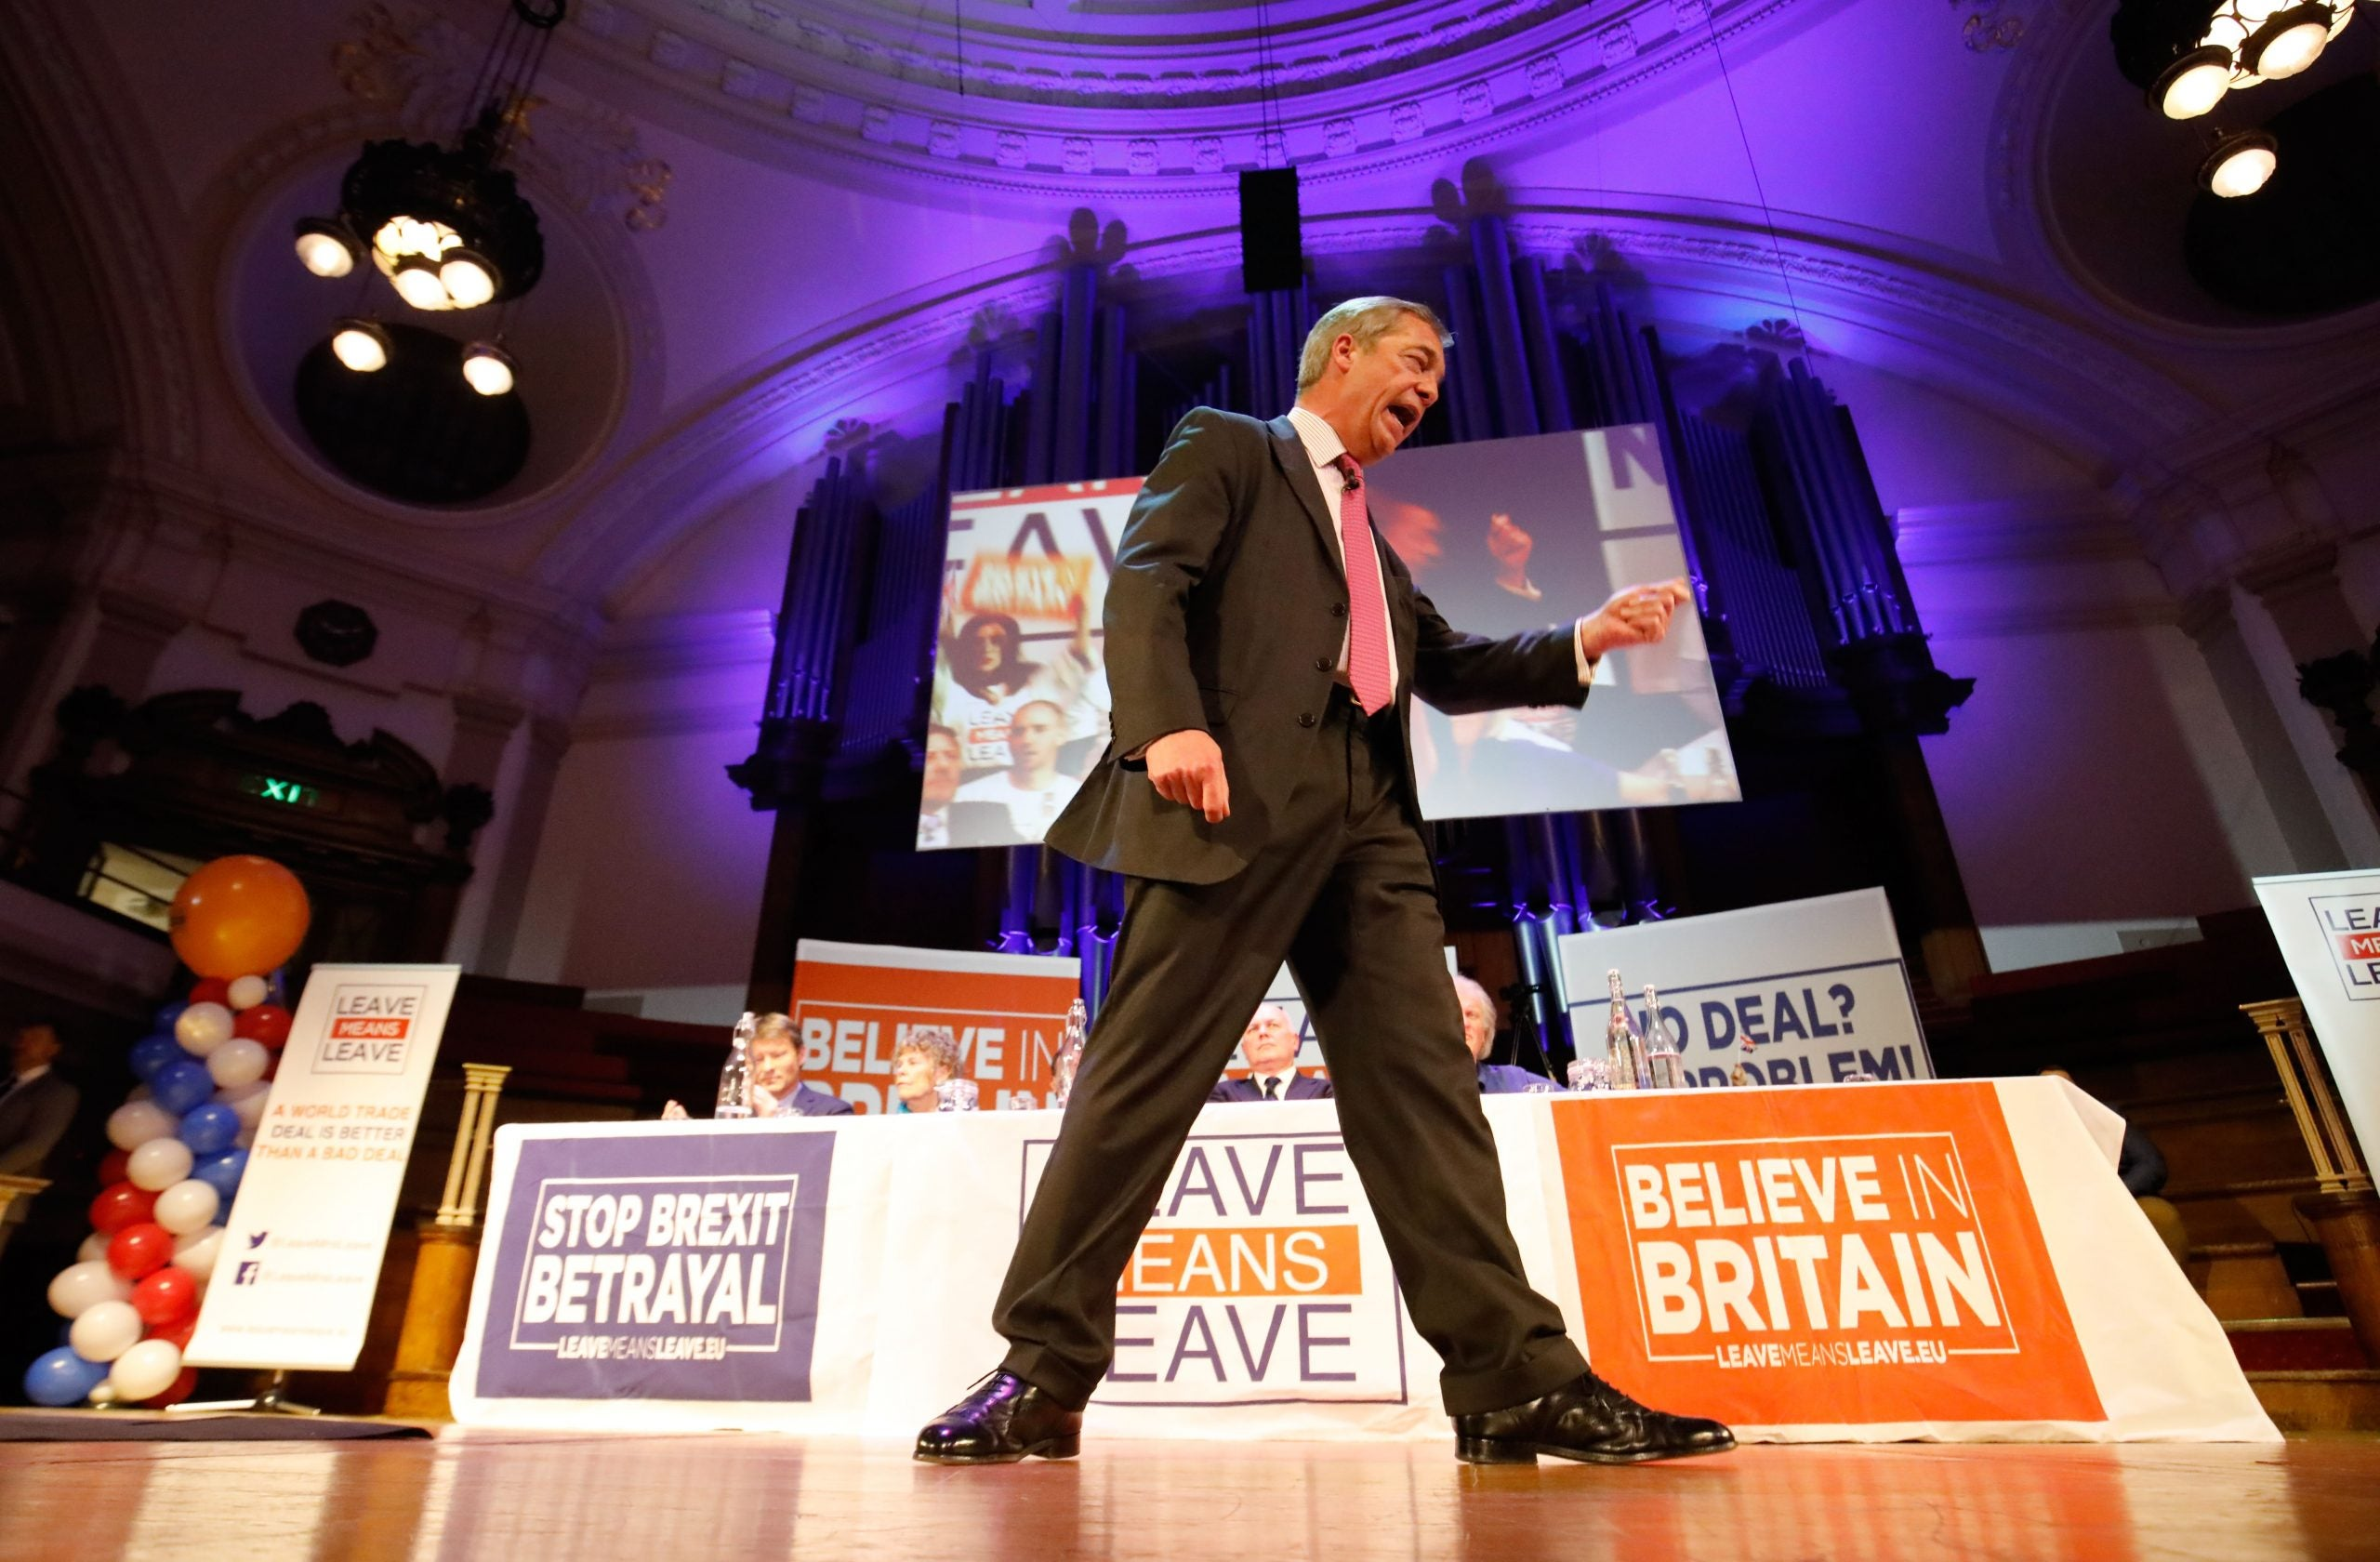 Nigel Farage is absolutely, definitely going to walk from Sunderland to London, honest